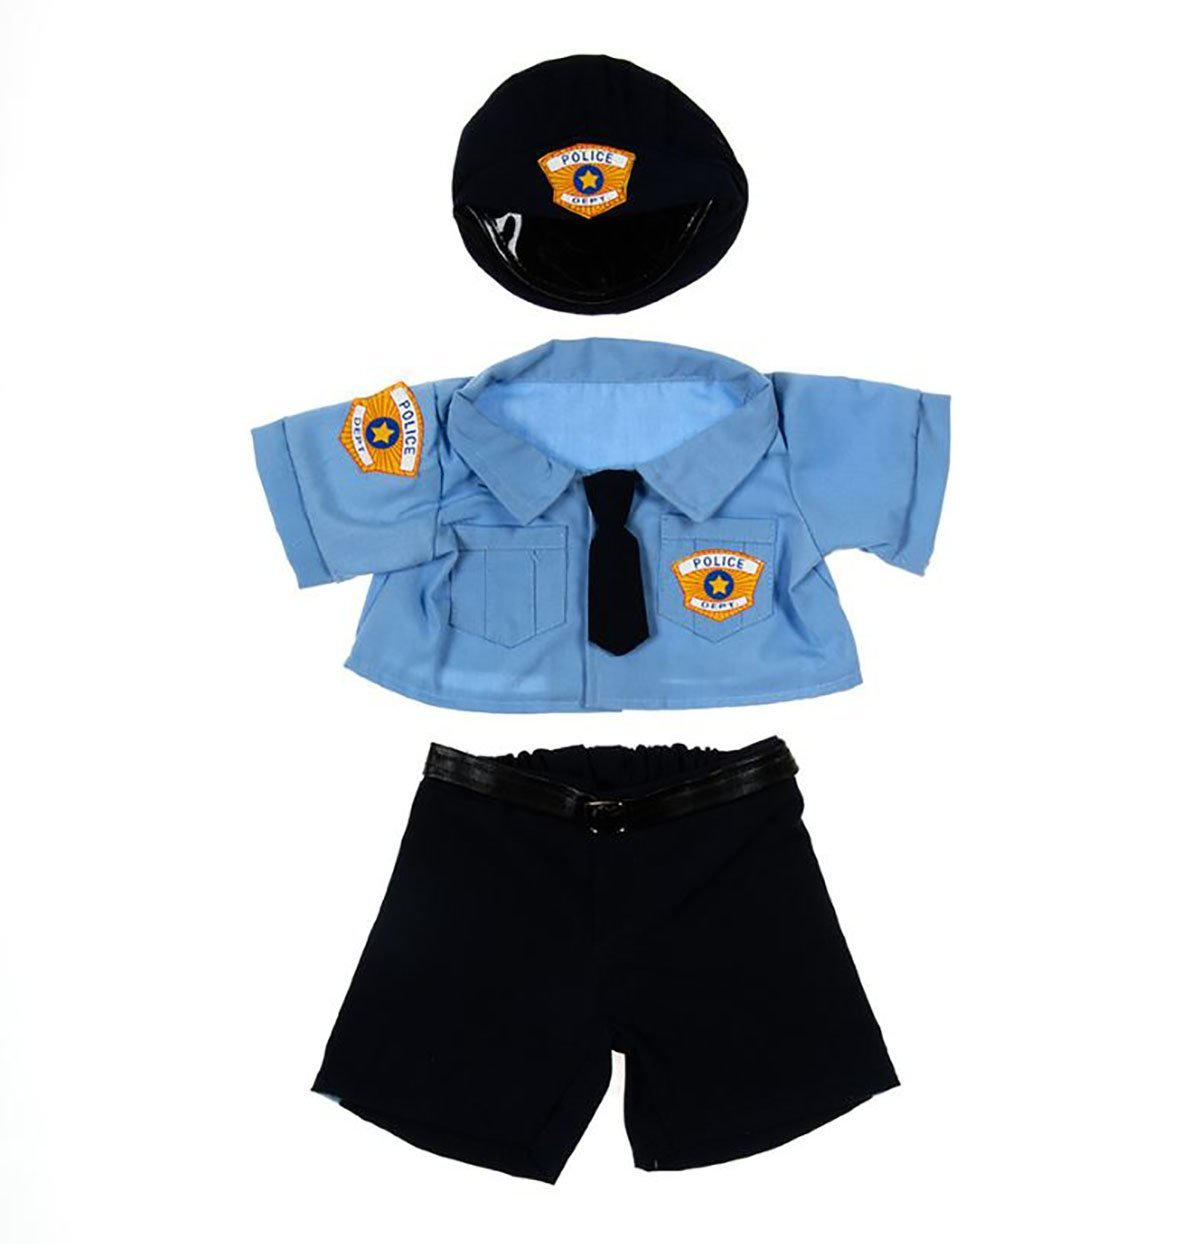 "Police Uniform Outfit Teddy Bear Clothes Fits Most 14"" 18"" Build-a-bear, Vermont... by Bear Factory"